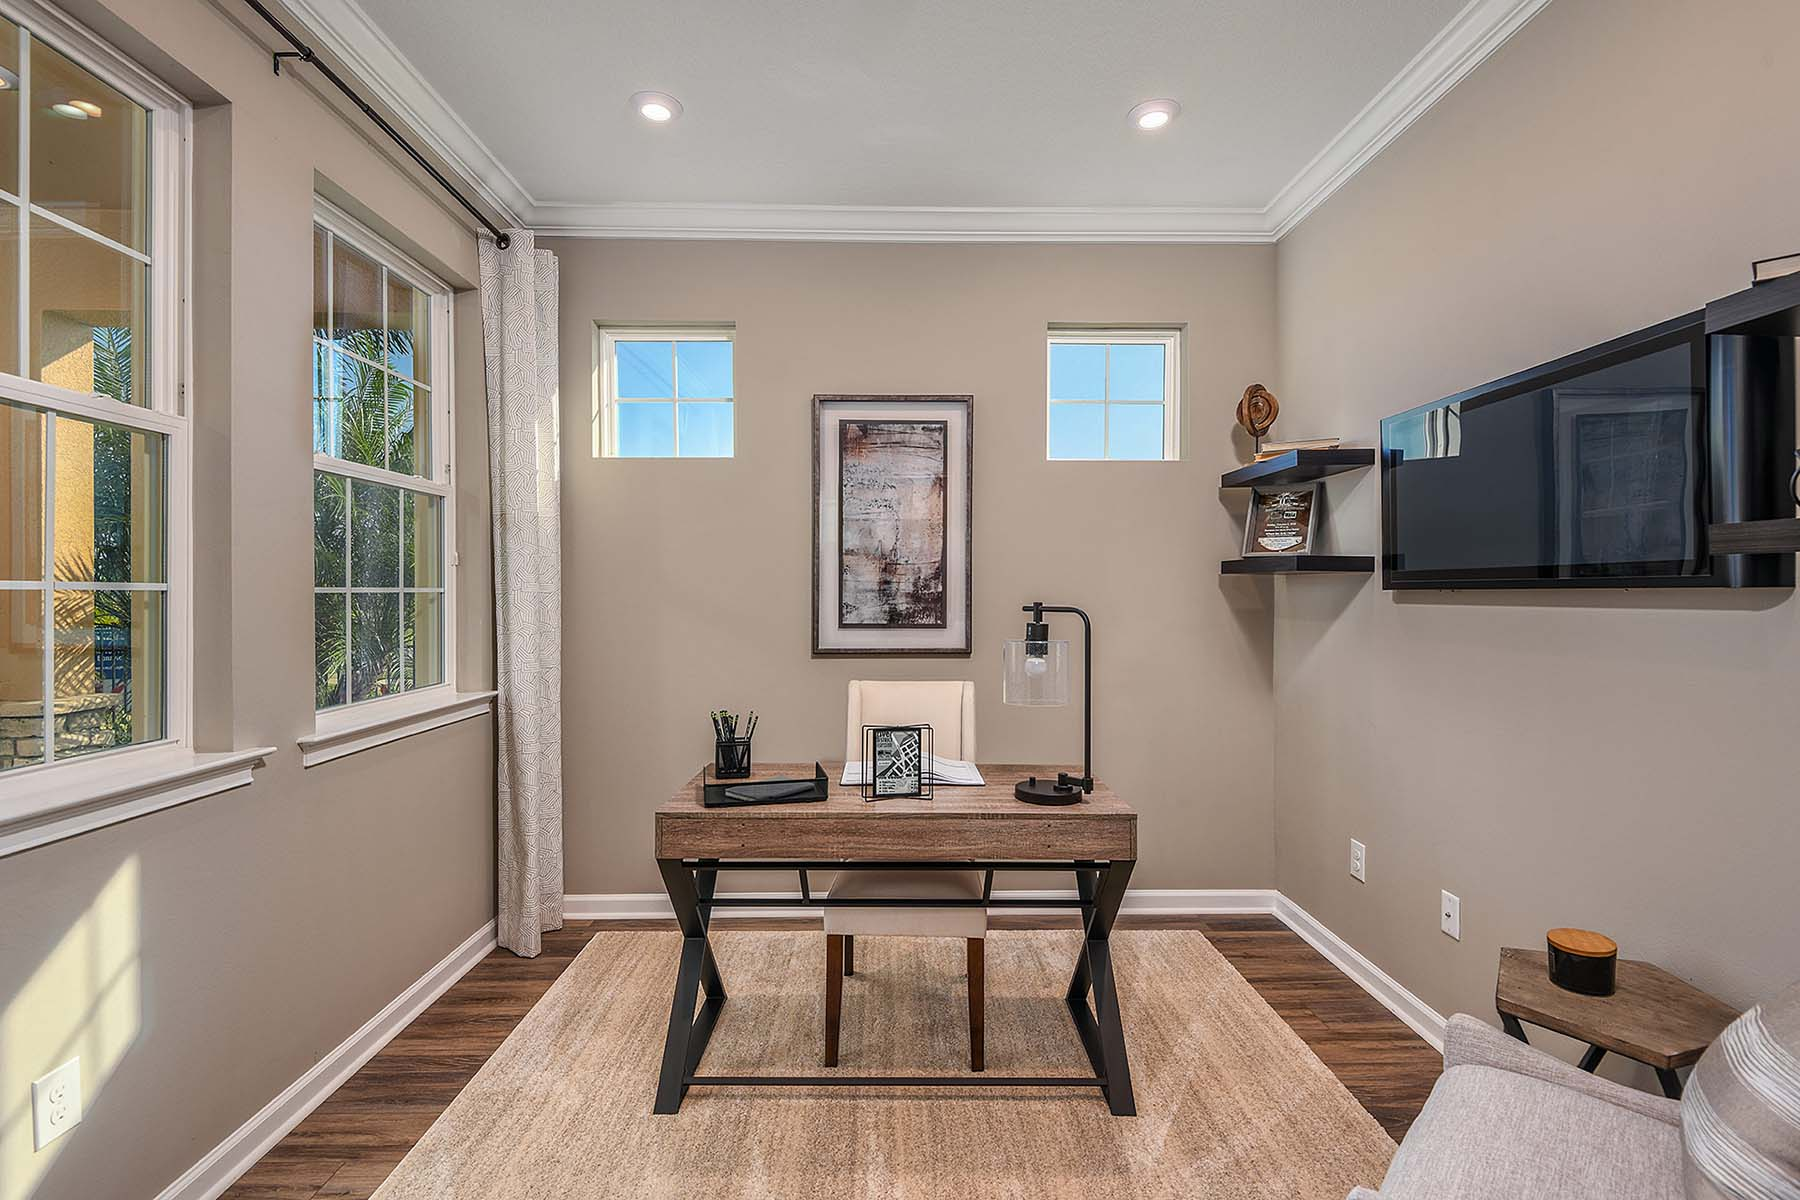 Largo Plan Study Room at Bonavie Cove in Fort Myers Florida by Mattamy Homes